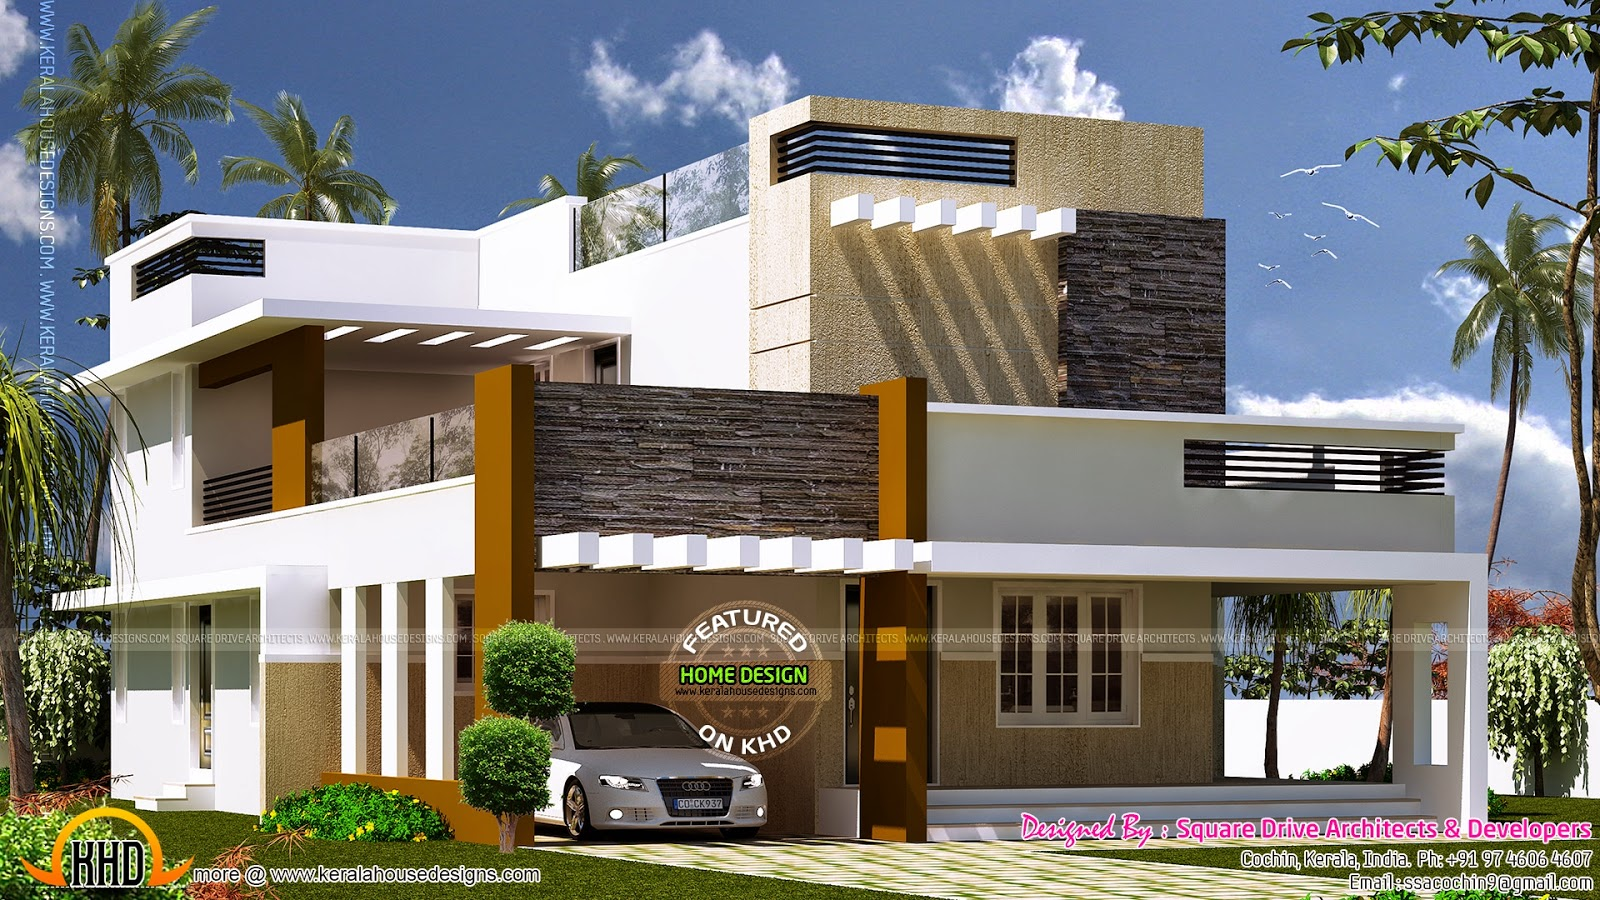 Exterior Design Of Contemporary Villa Kerala Home Design And Floor Plans